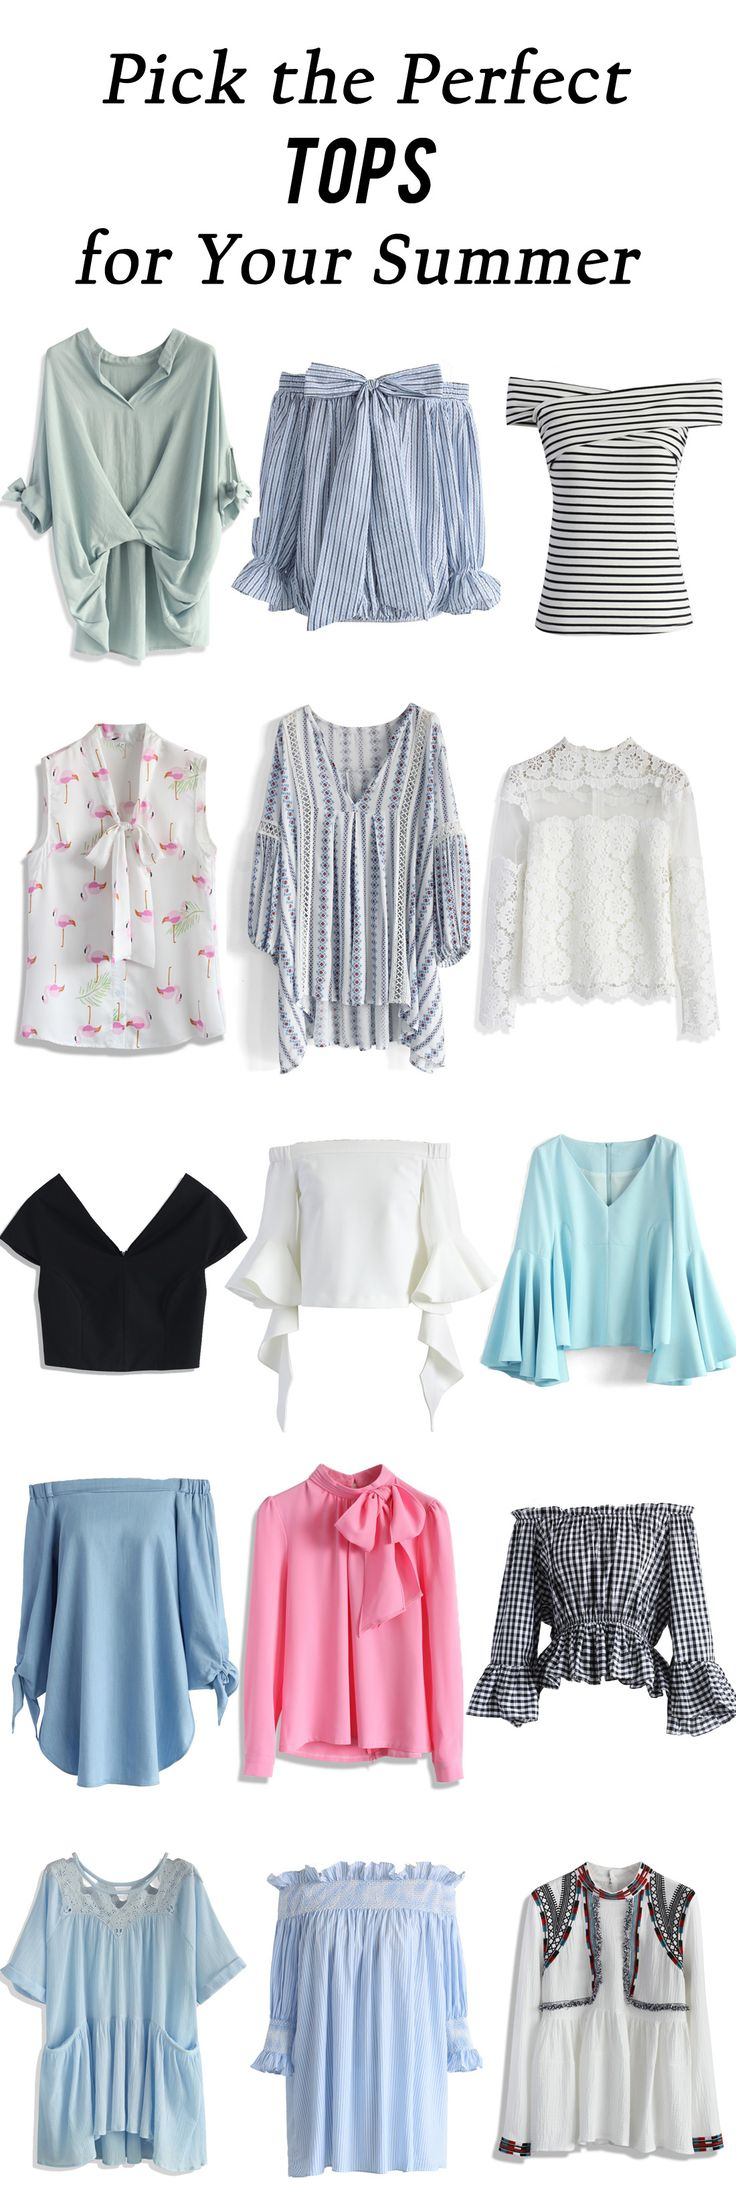 Pick the perfect tops for your summer   chicwish.com